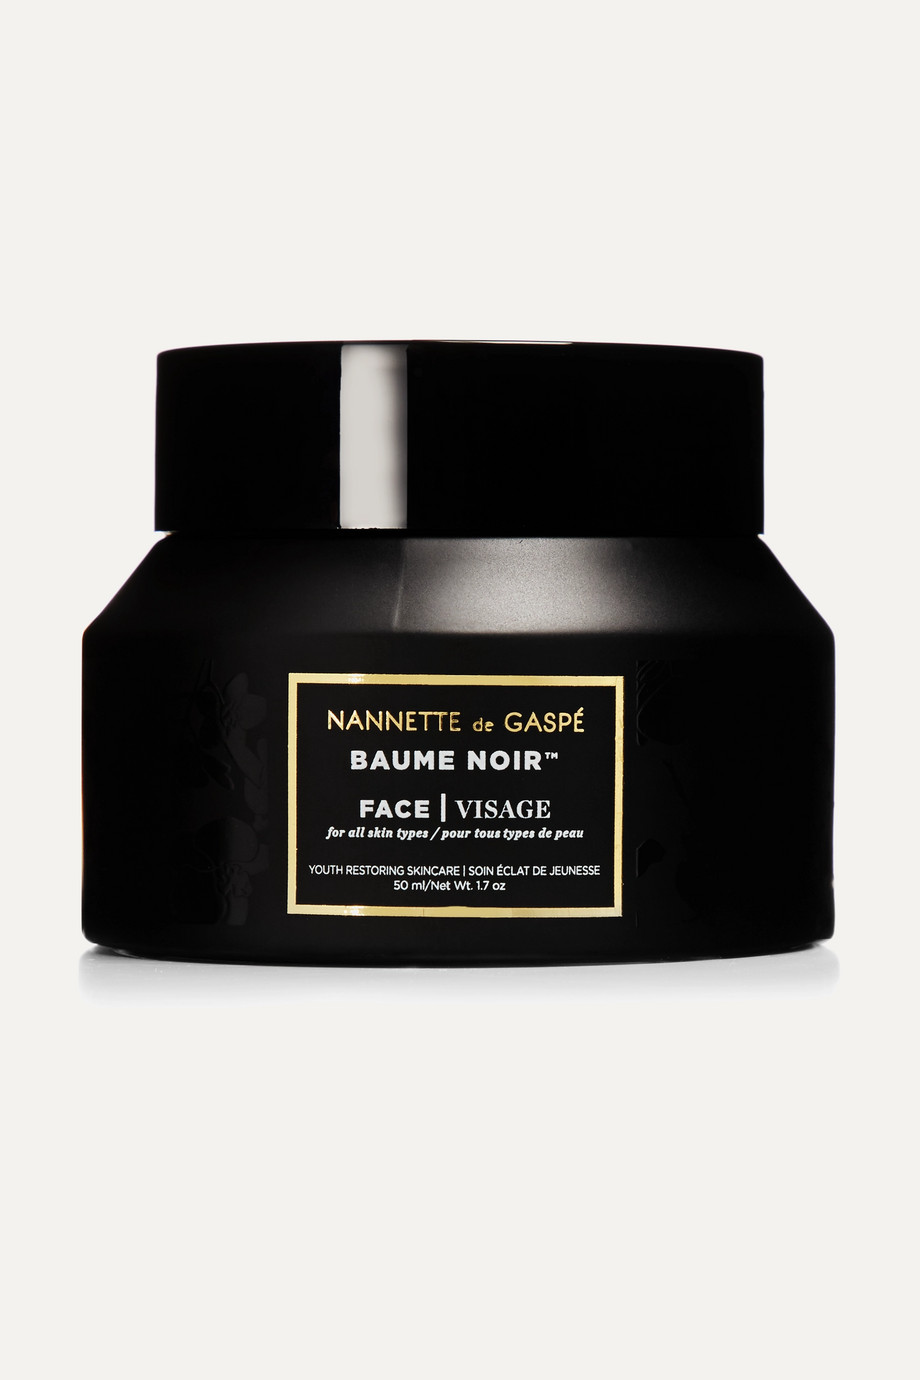 NANNETTE DE GASPÉ Art of Noir - Baume Noir Face, 50ml